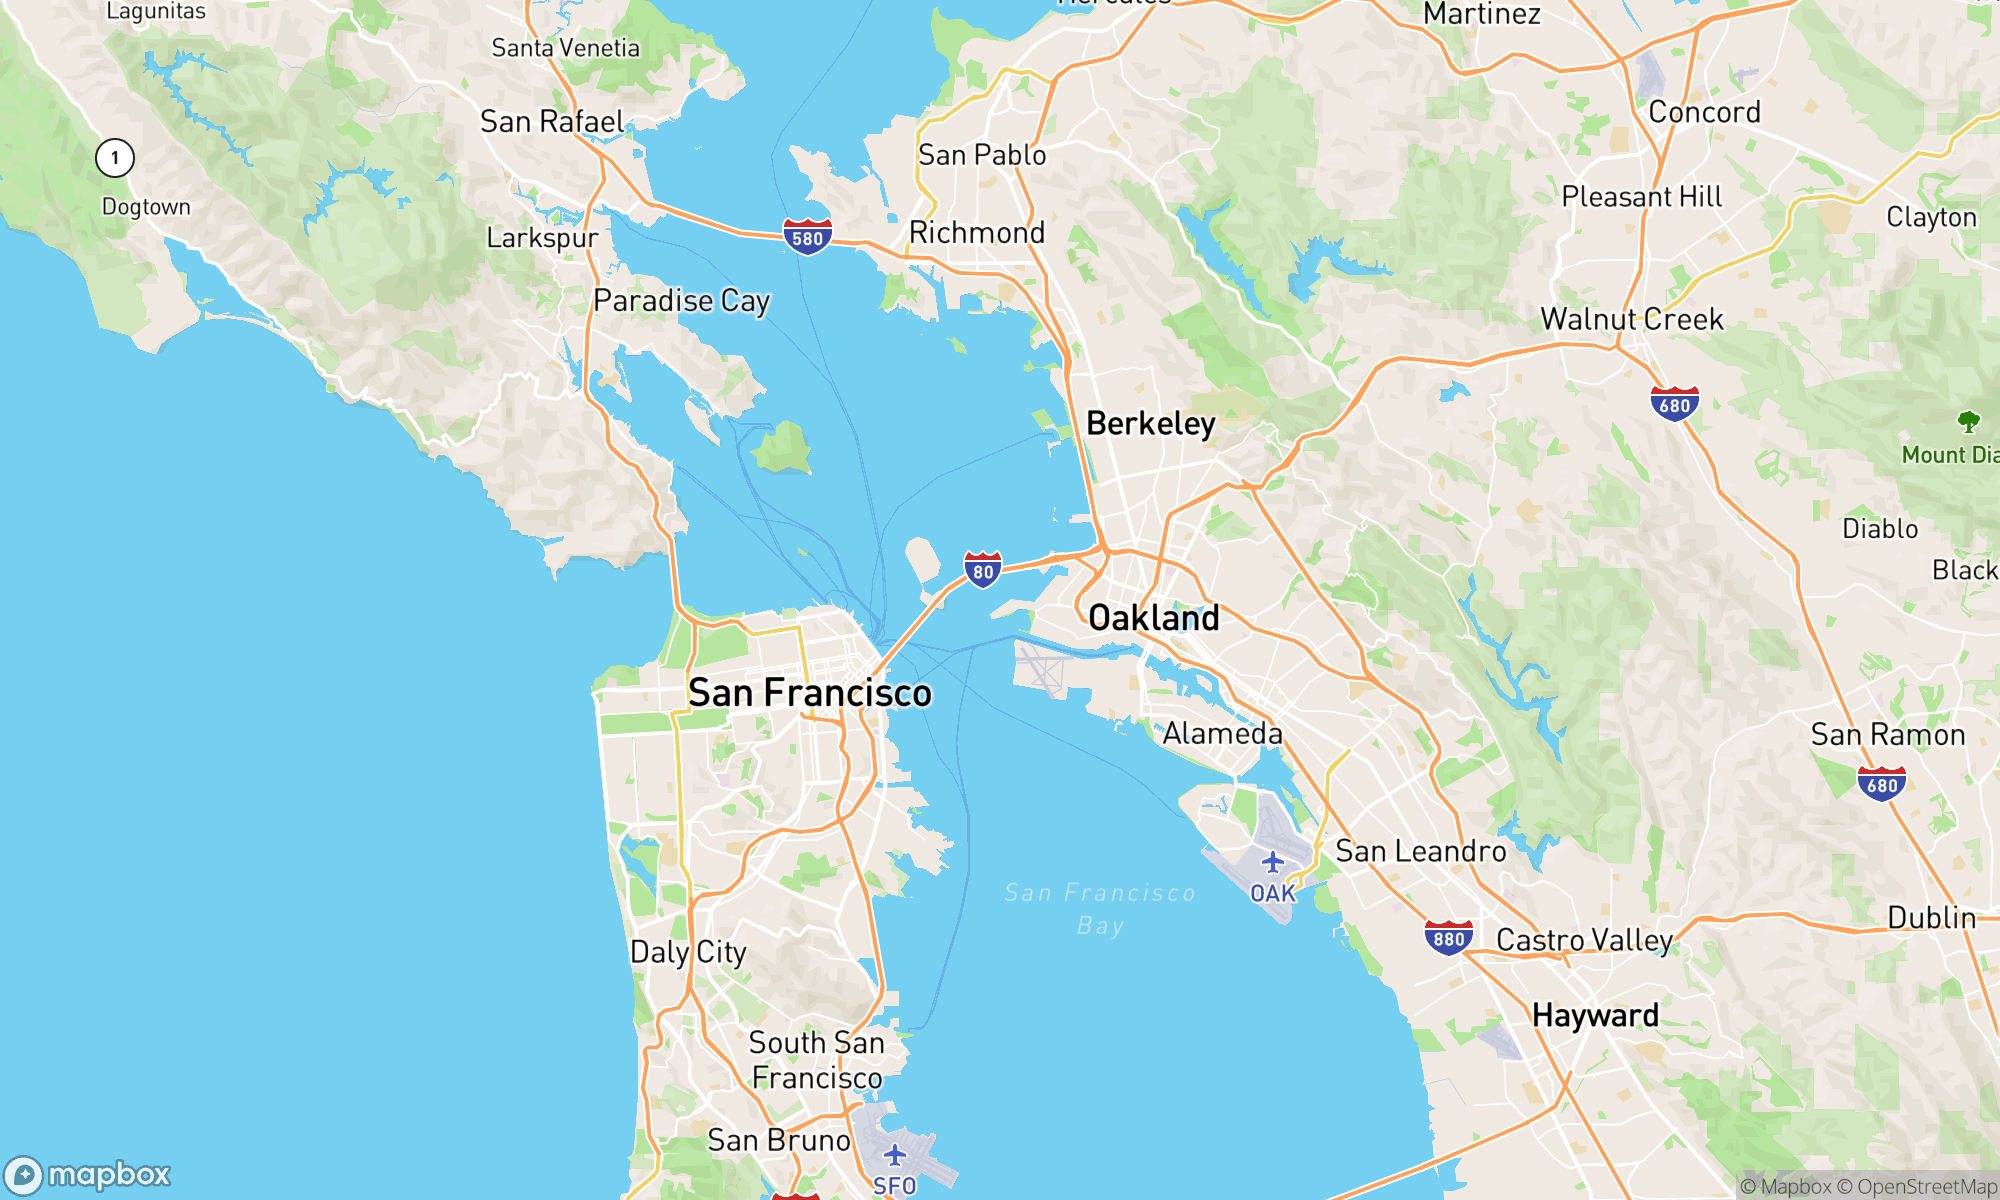 static mapbox map of the san francisco bay area